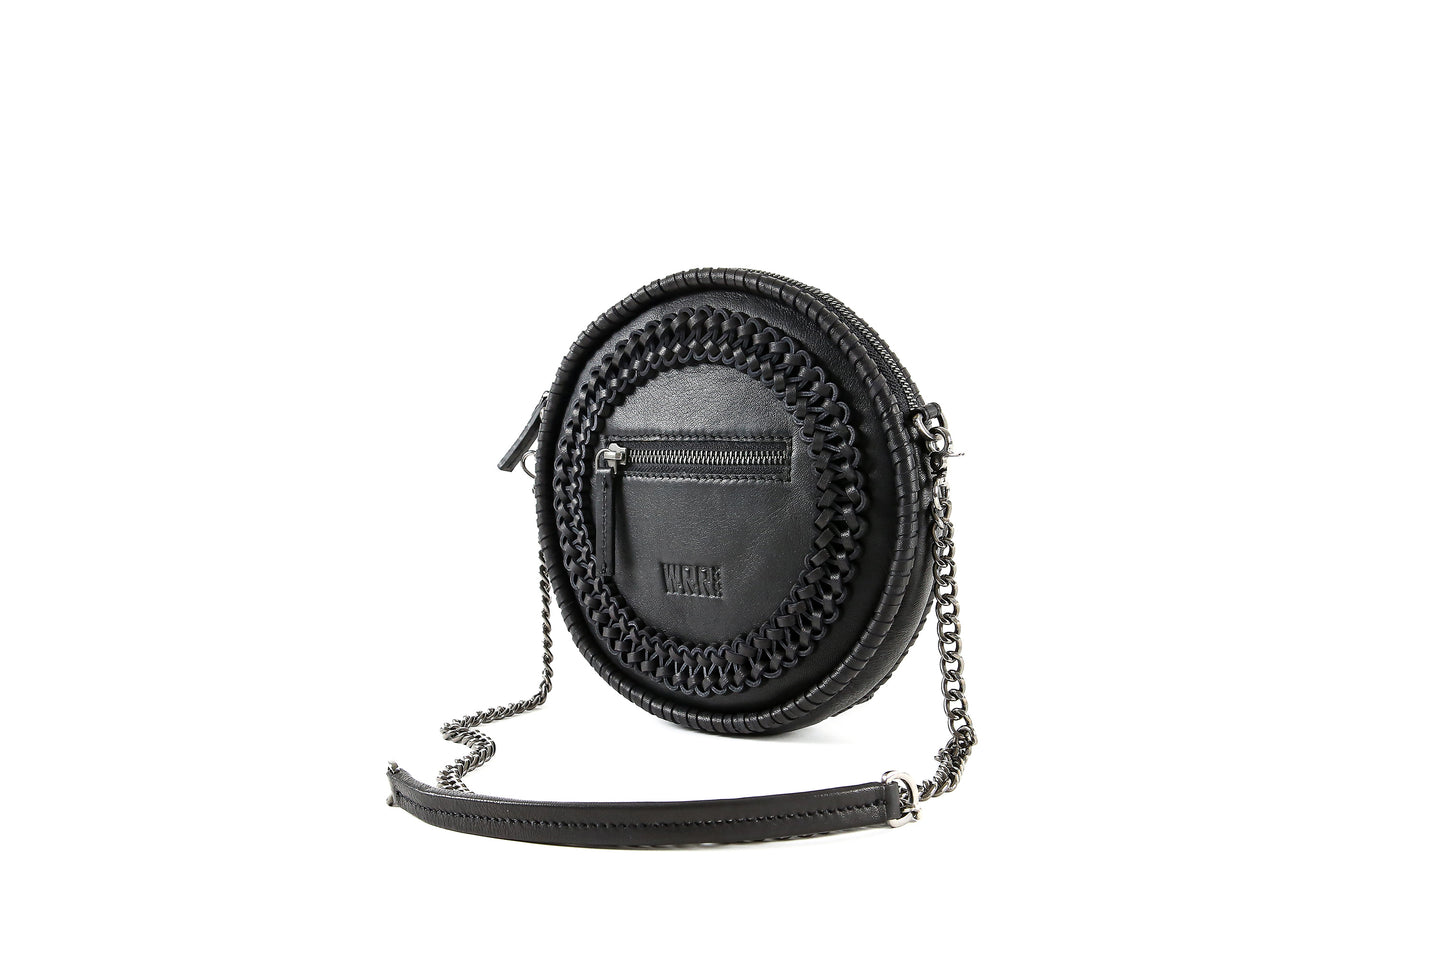 KESS BAG |  BLACK